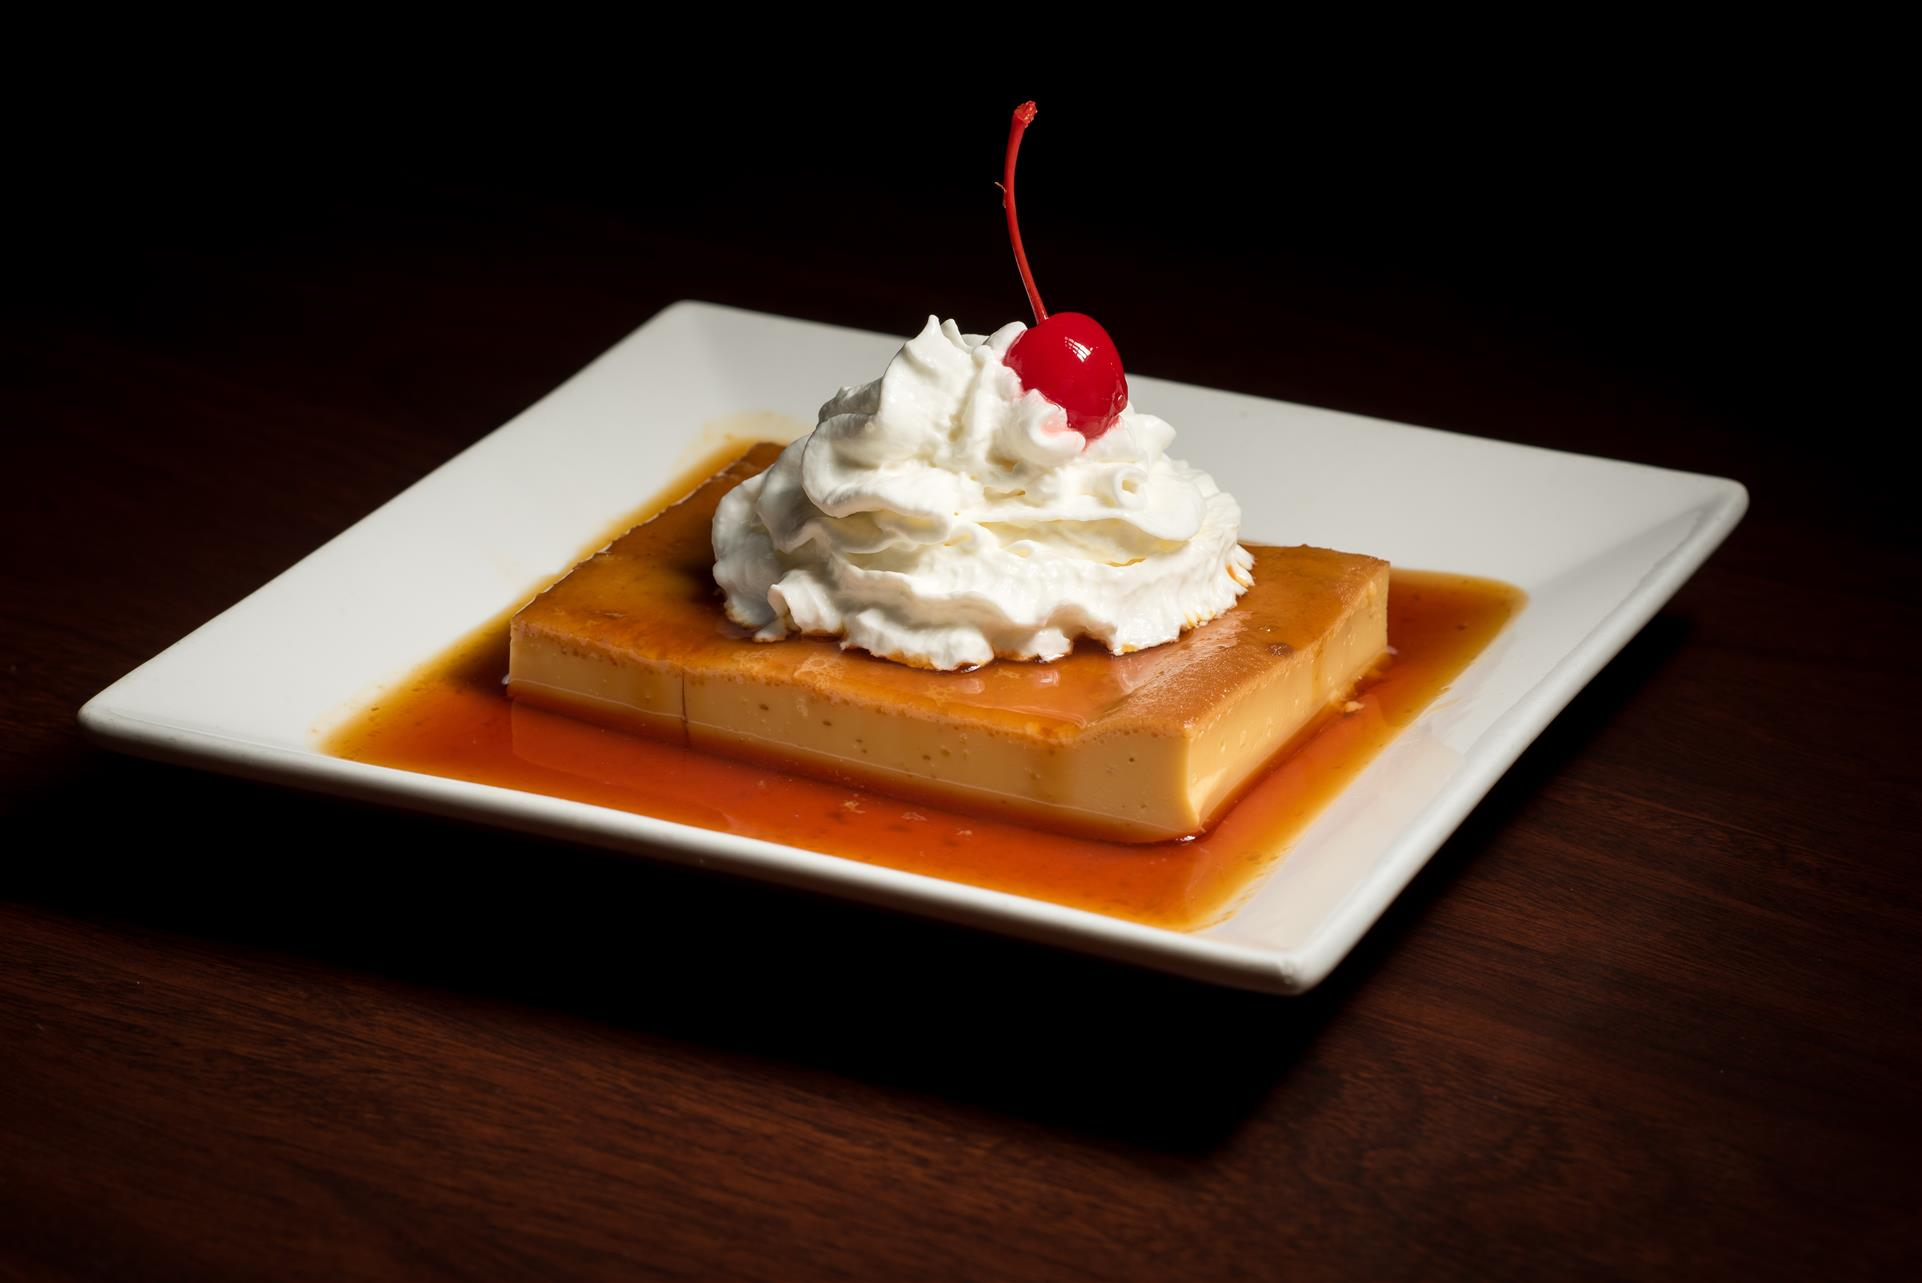 Flan dessert topped with whipped cream